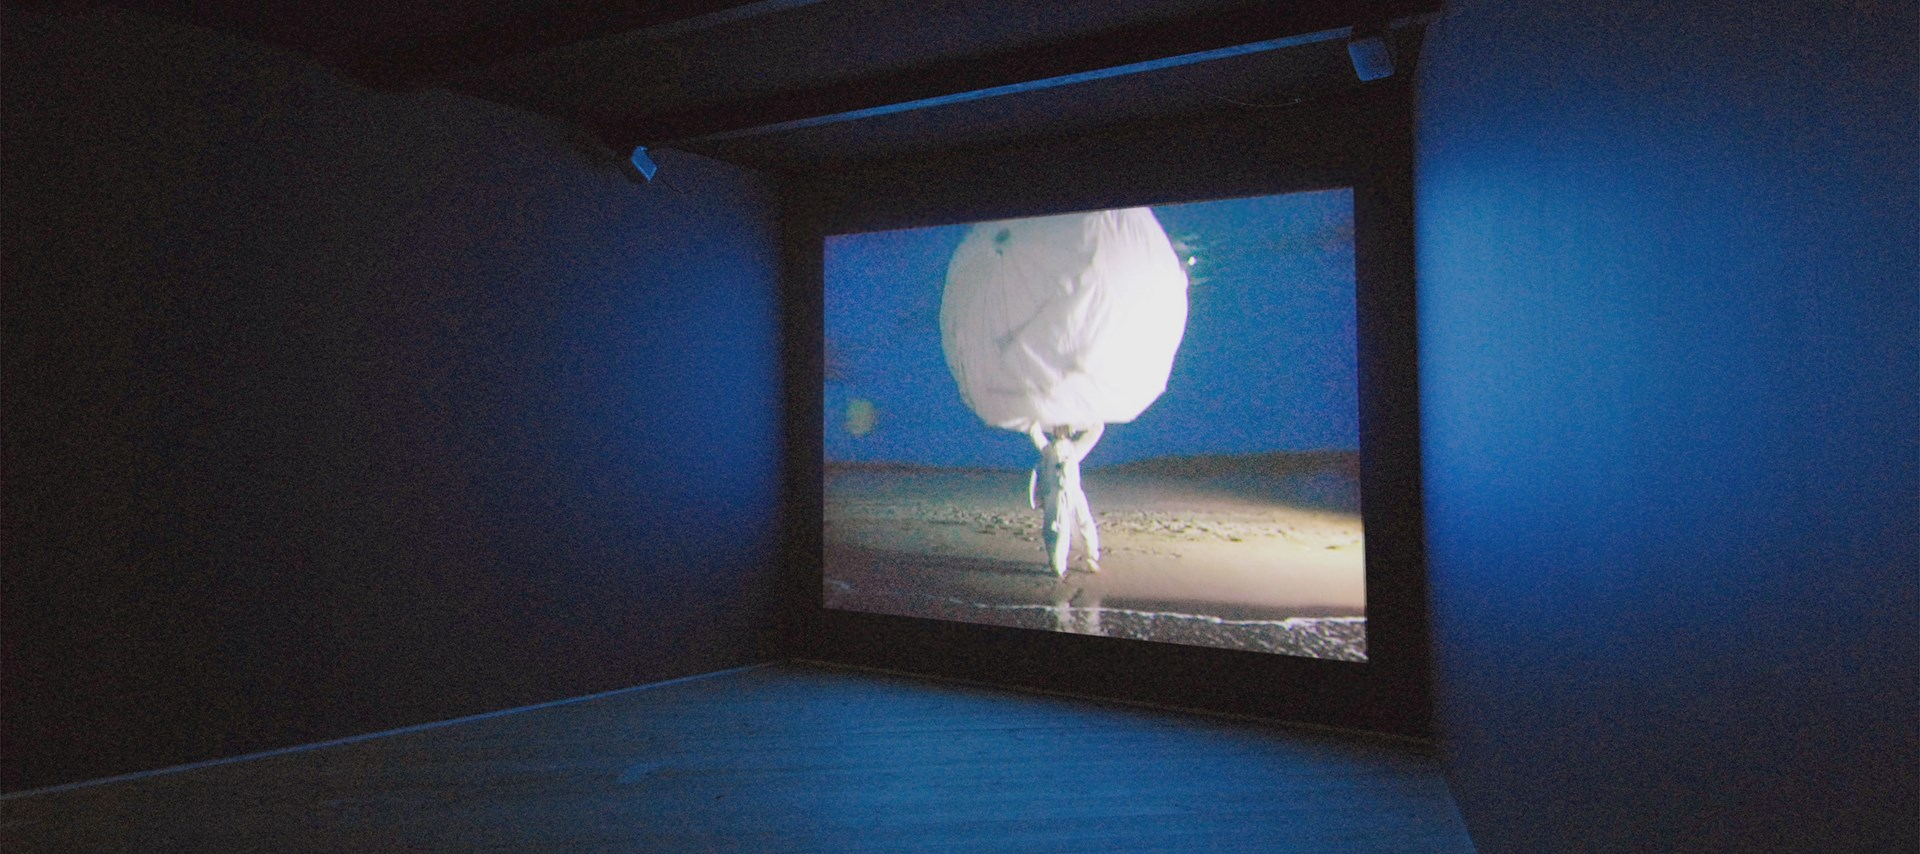 Zoë Walker and Neil Bromwich: Limbo-land: Installation Shot by Colin Davison